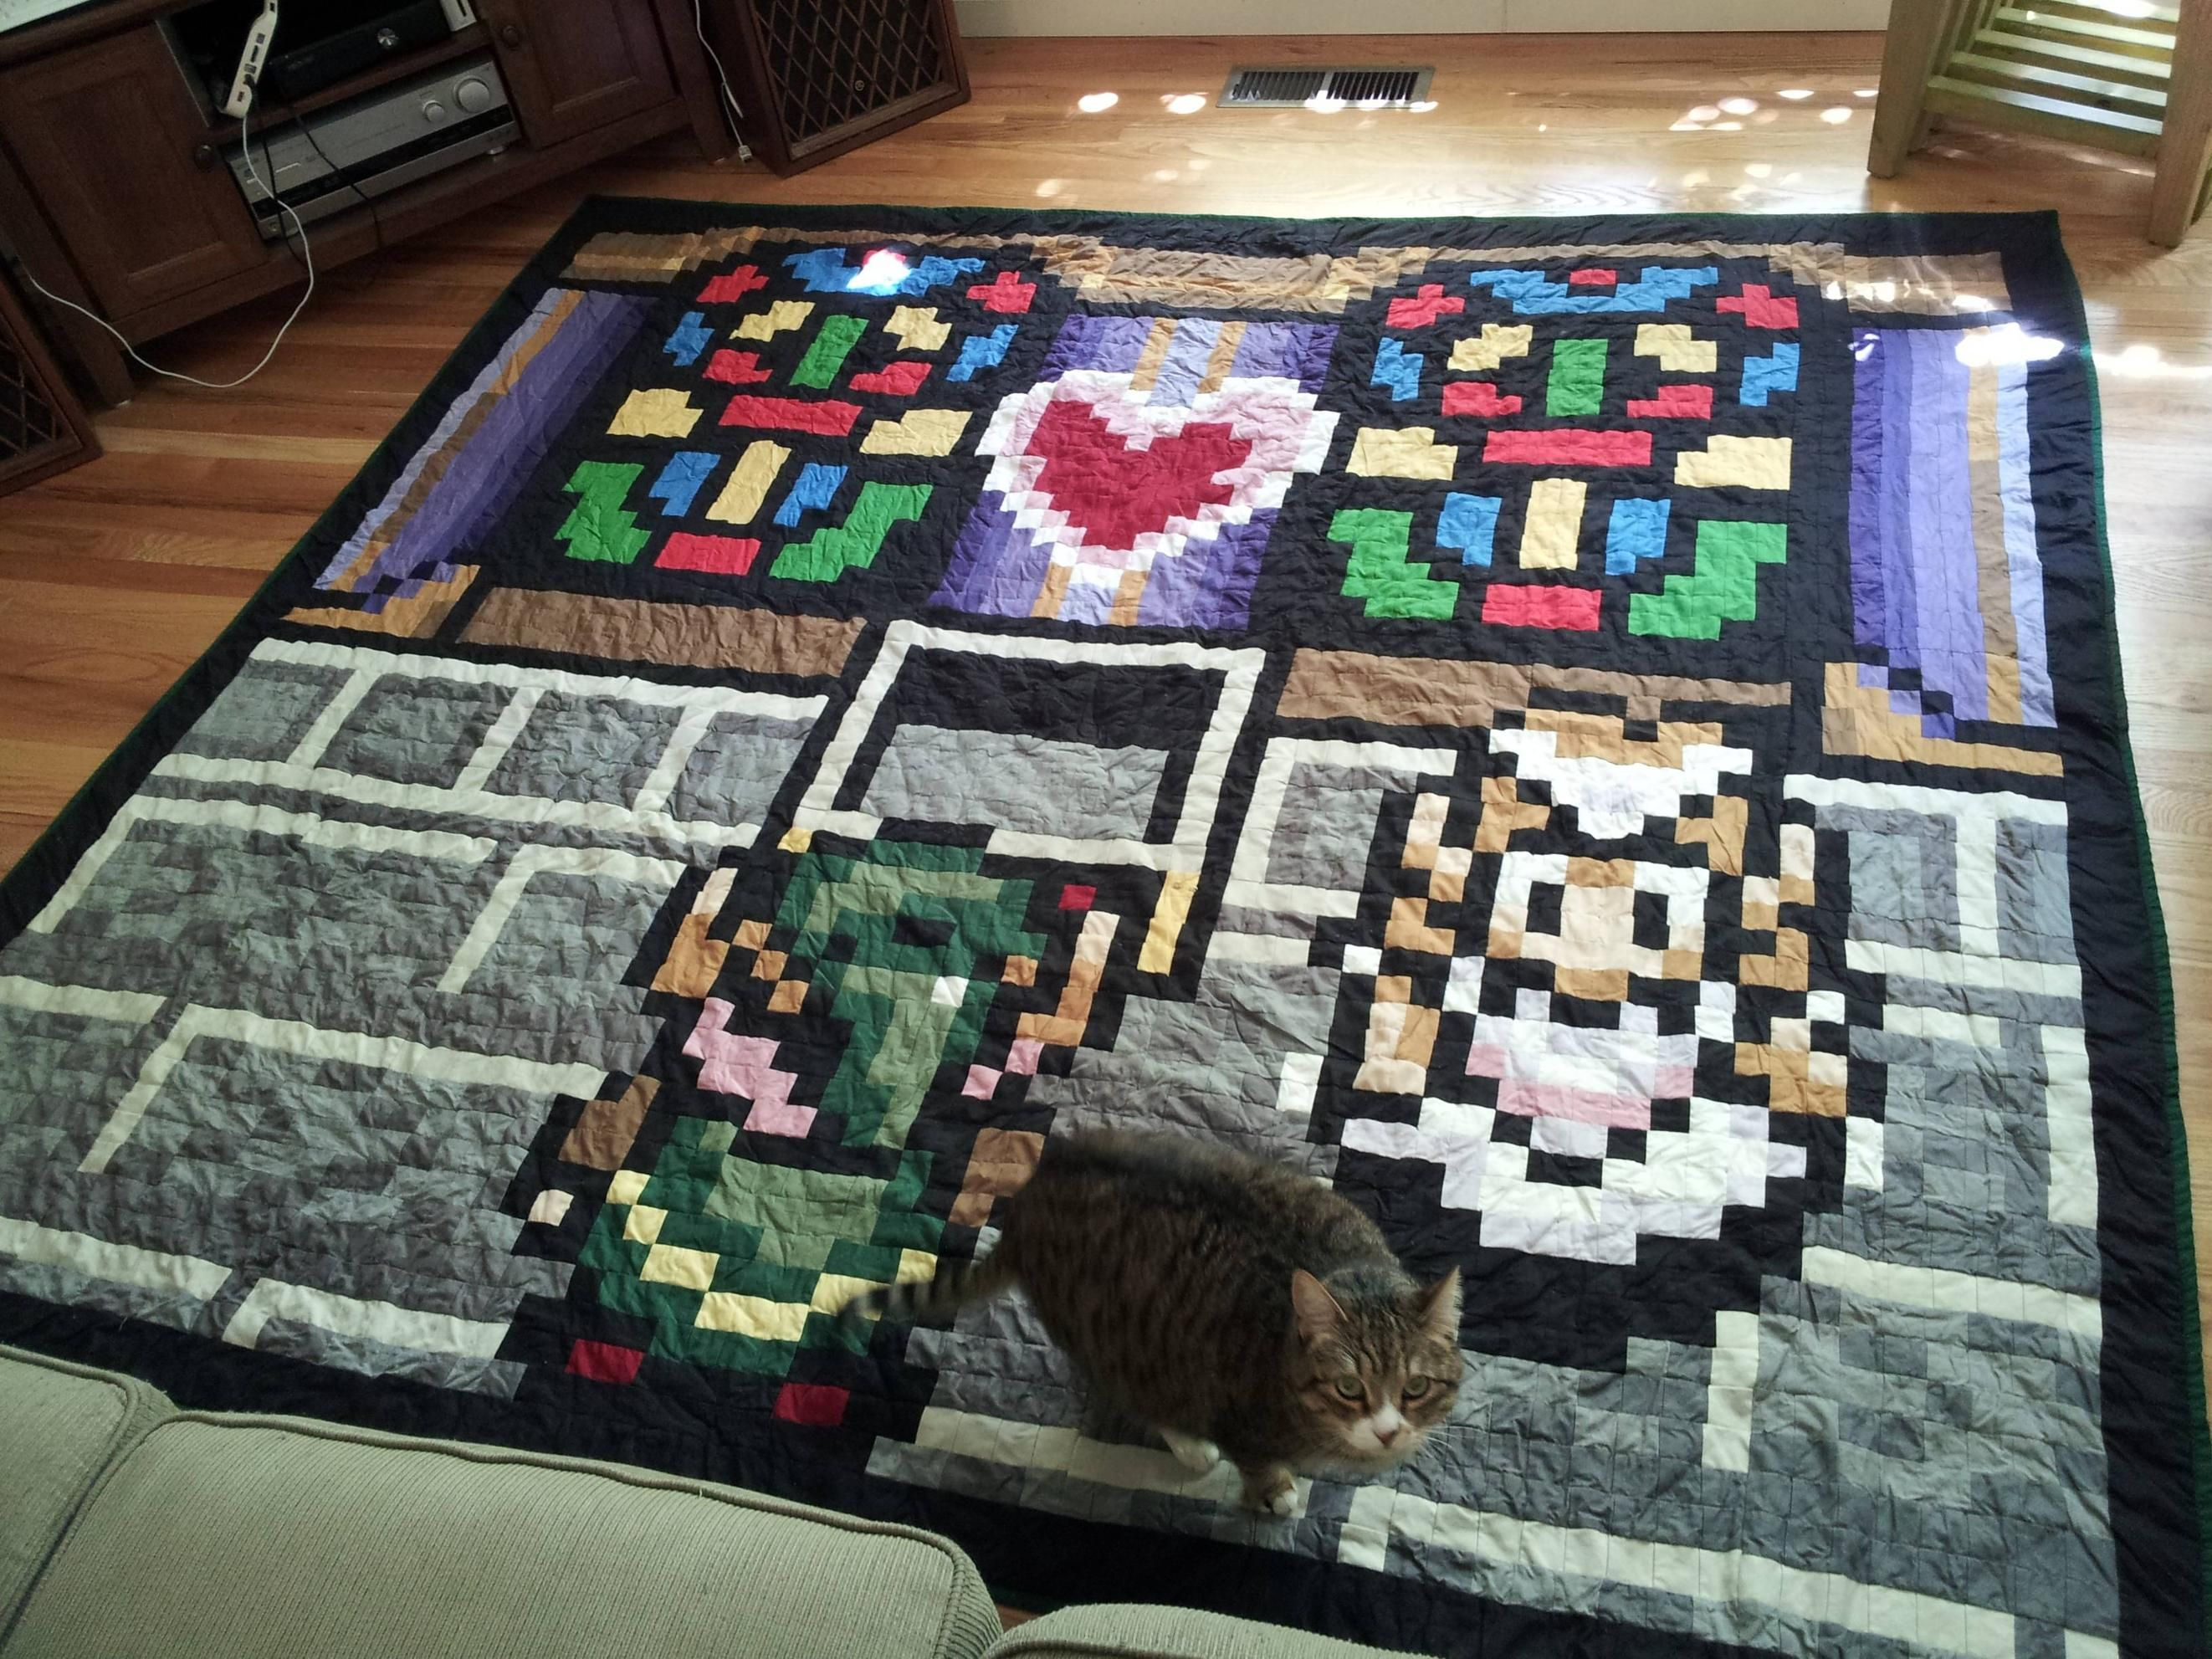 Legend Of Zelda Quilt Wedding Present For Two Gamers Video Game